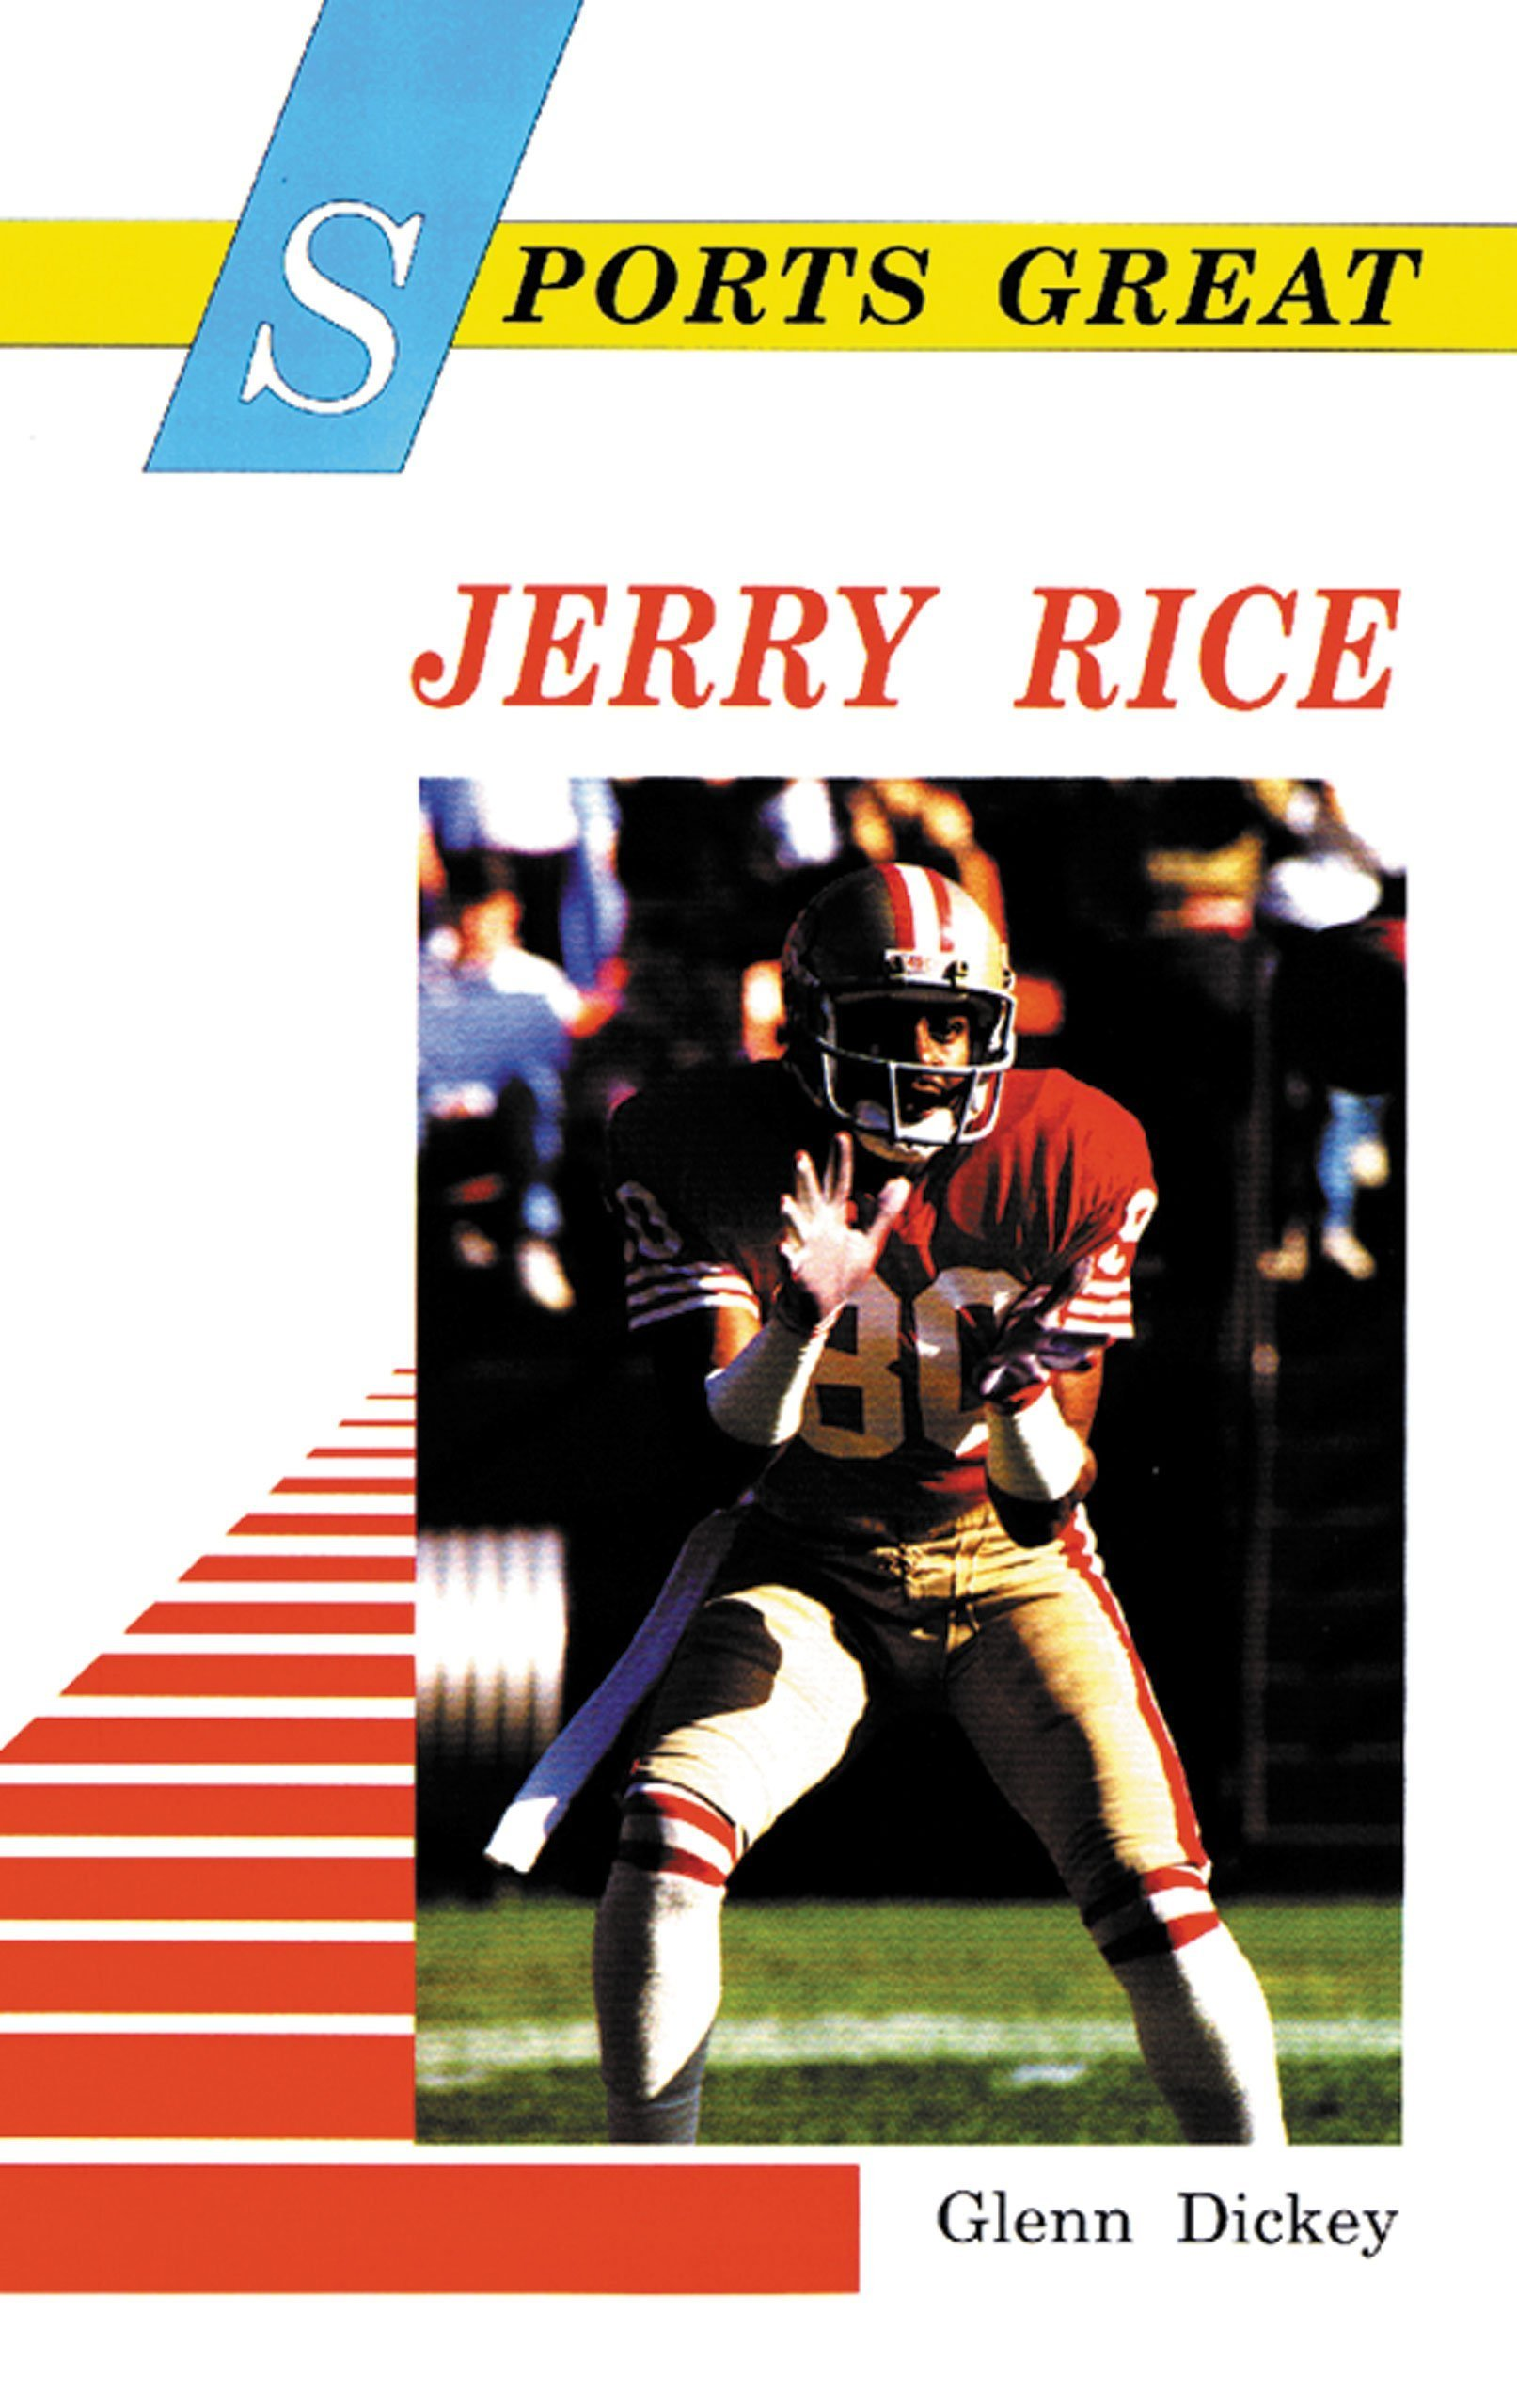 Sports Great Jerry Rice (Sports Great Books)